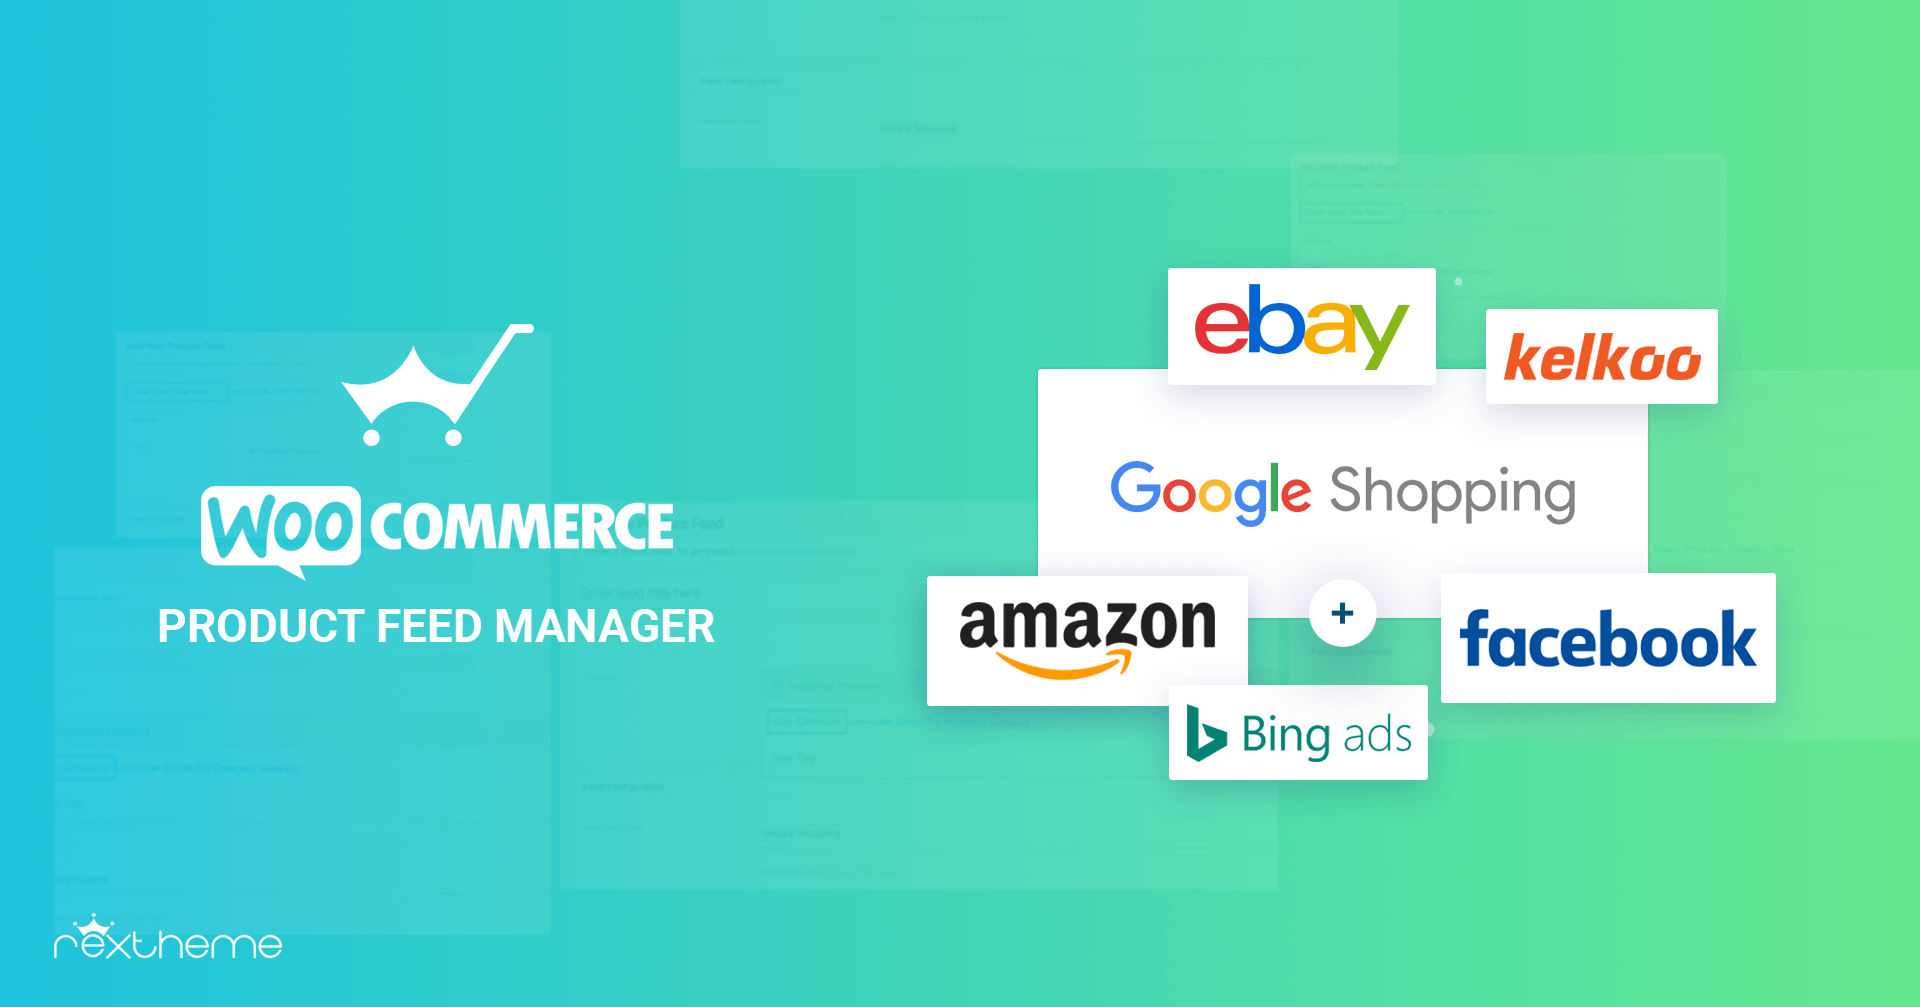 HOW TO AUTO-SYNC WOOCOMMERCE PRODUCTS TO GOOGLE MERCHANT